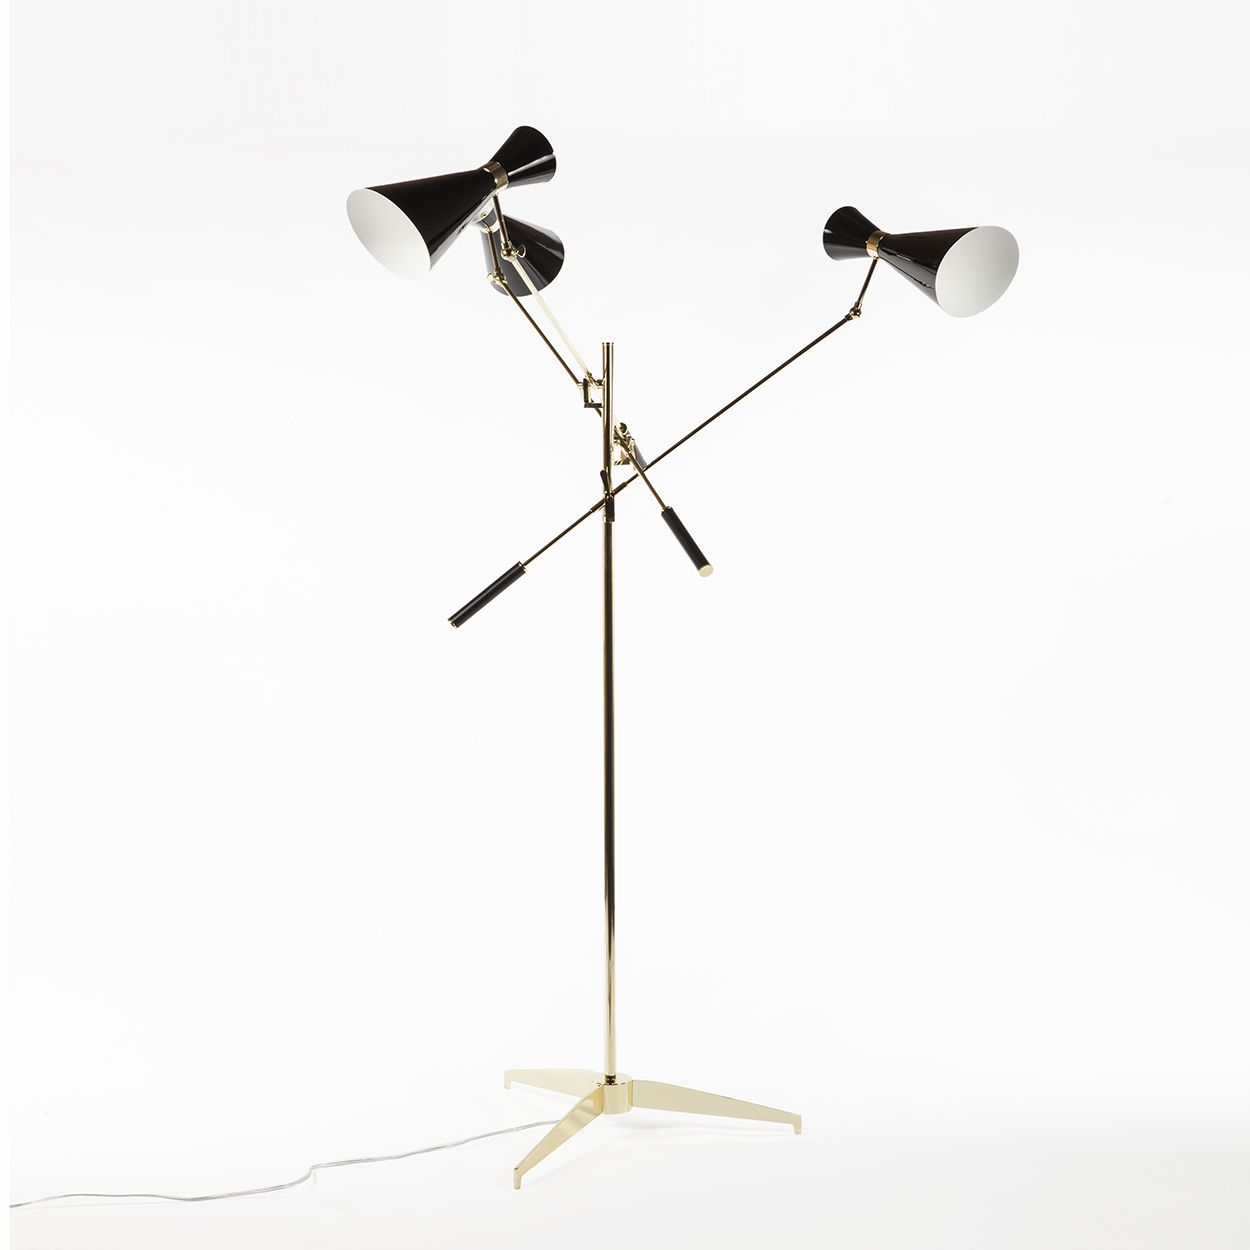 Triennale floor lamp three arms and double cone shades gold triennale floor lamp three arms and double cone shades gold geotapseo Gallery